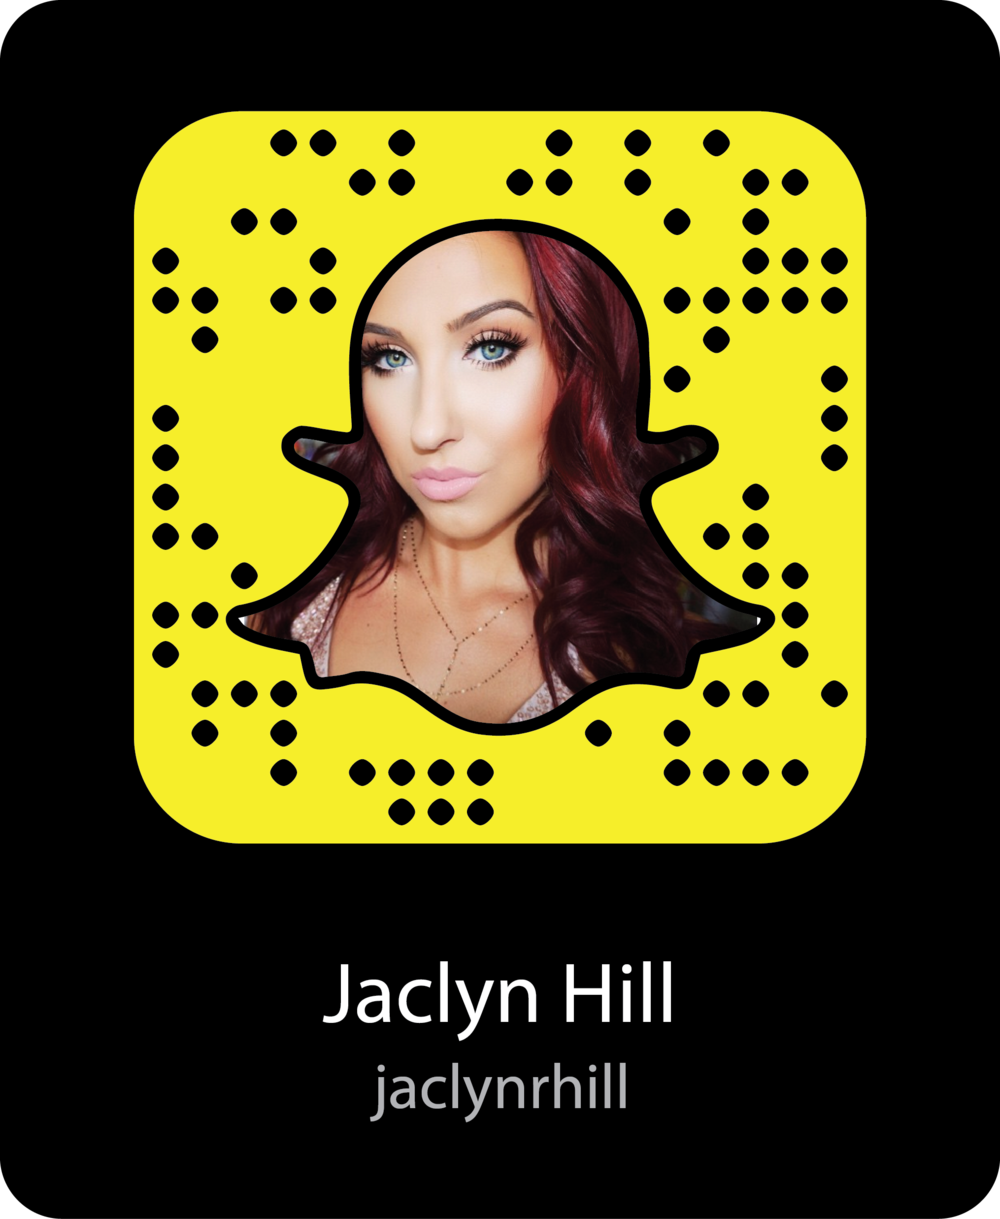 jaclynrhill-Beauty-Bloggers-snapchat-snapcode.png